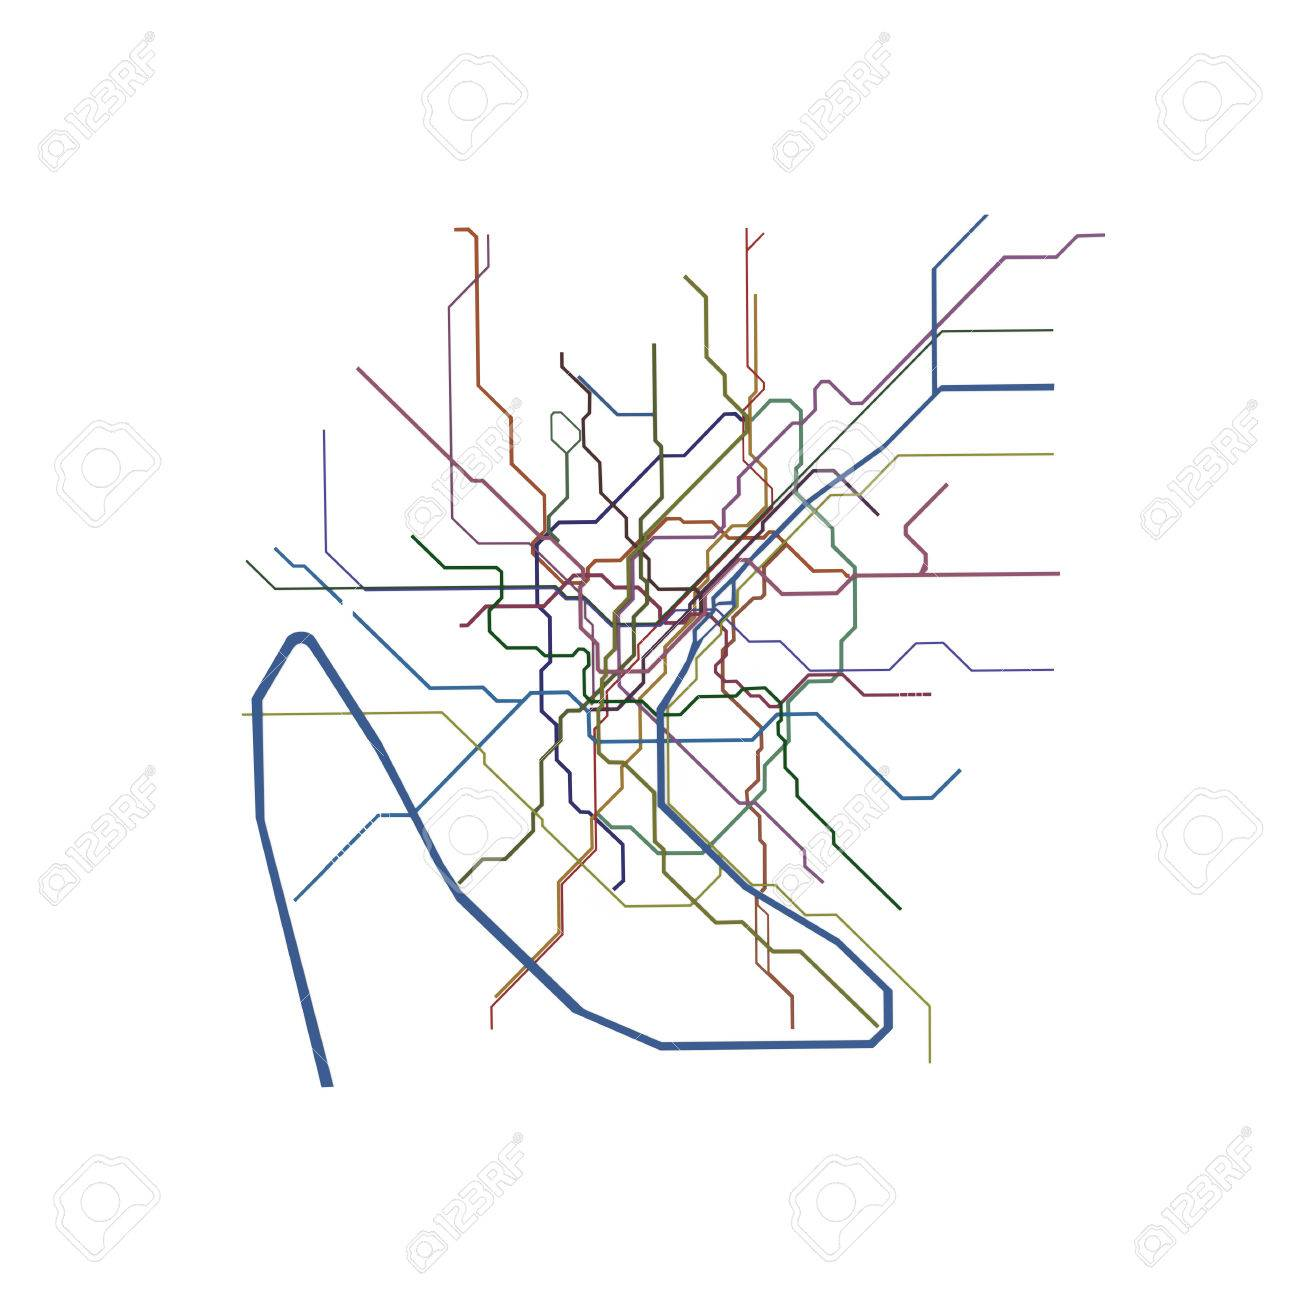 Paris Metro Map Isolated On White Background Stock Photo Picture